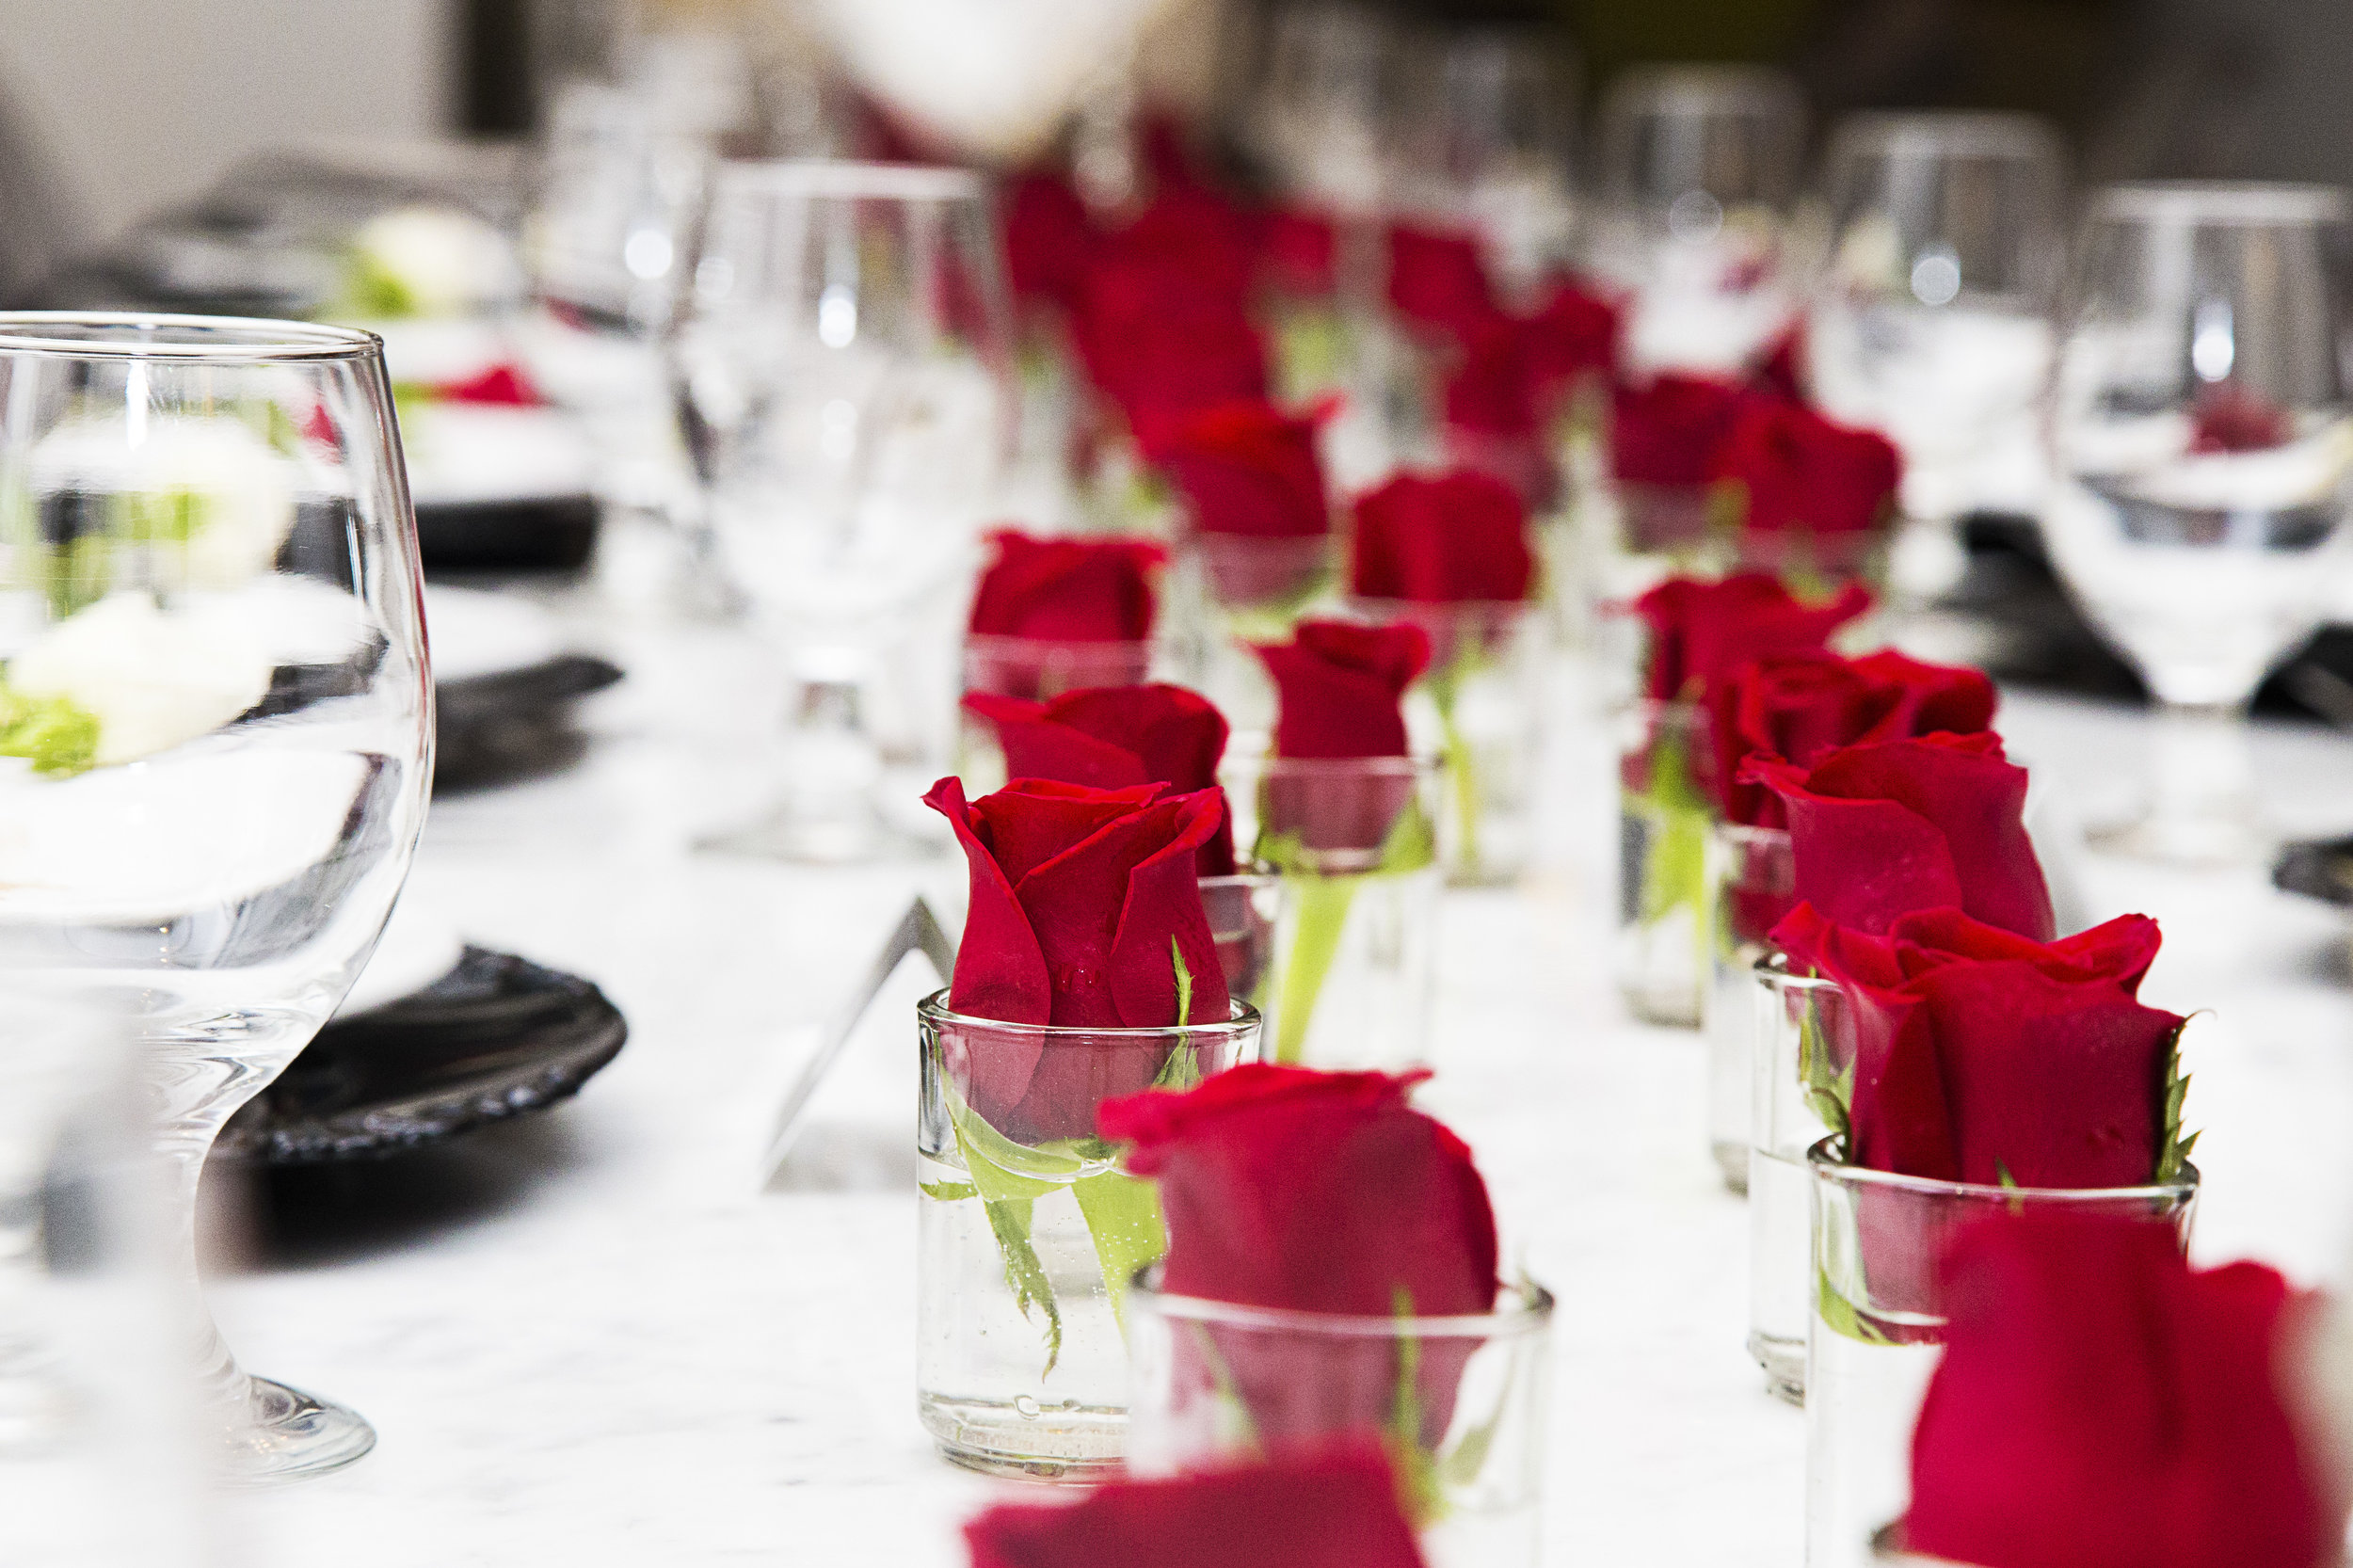 saints vs sinners dinner table flowers.jpg